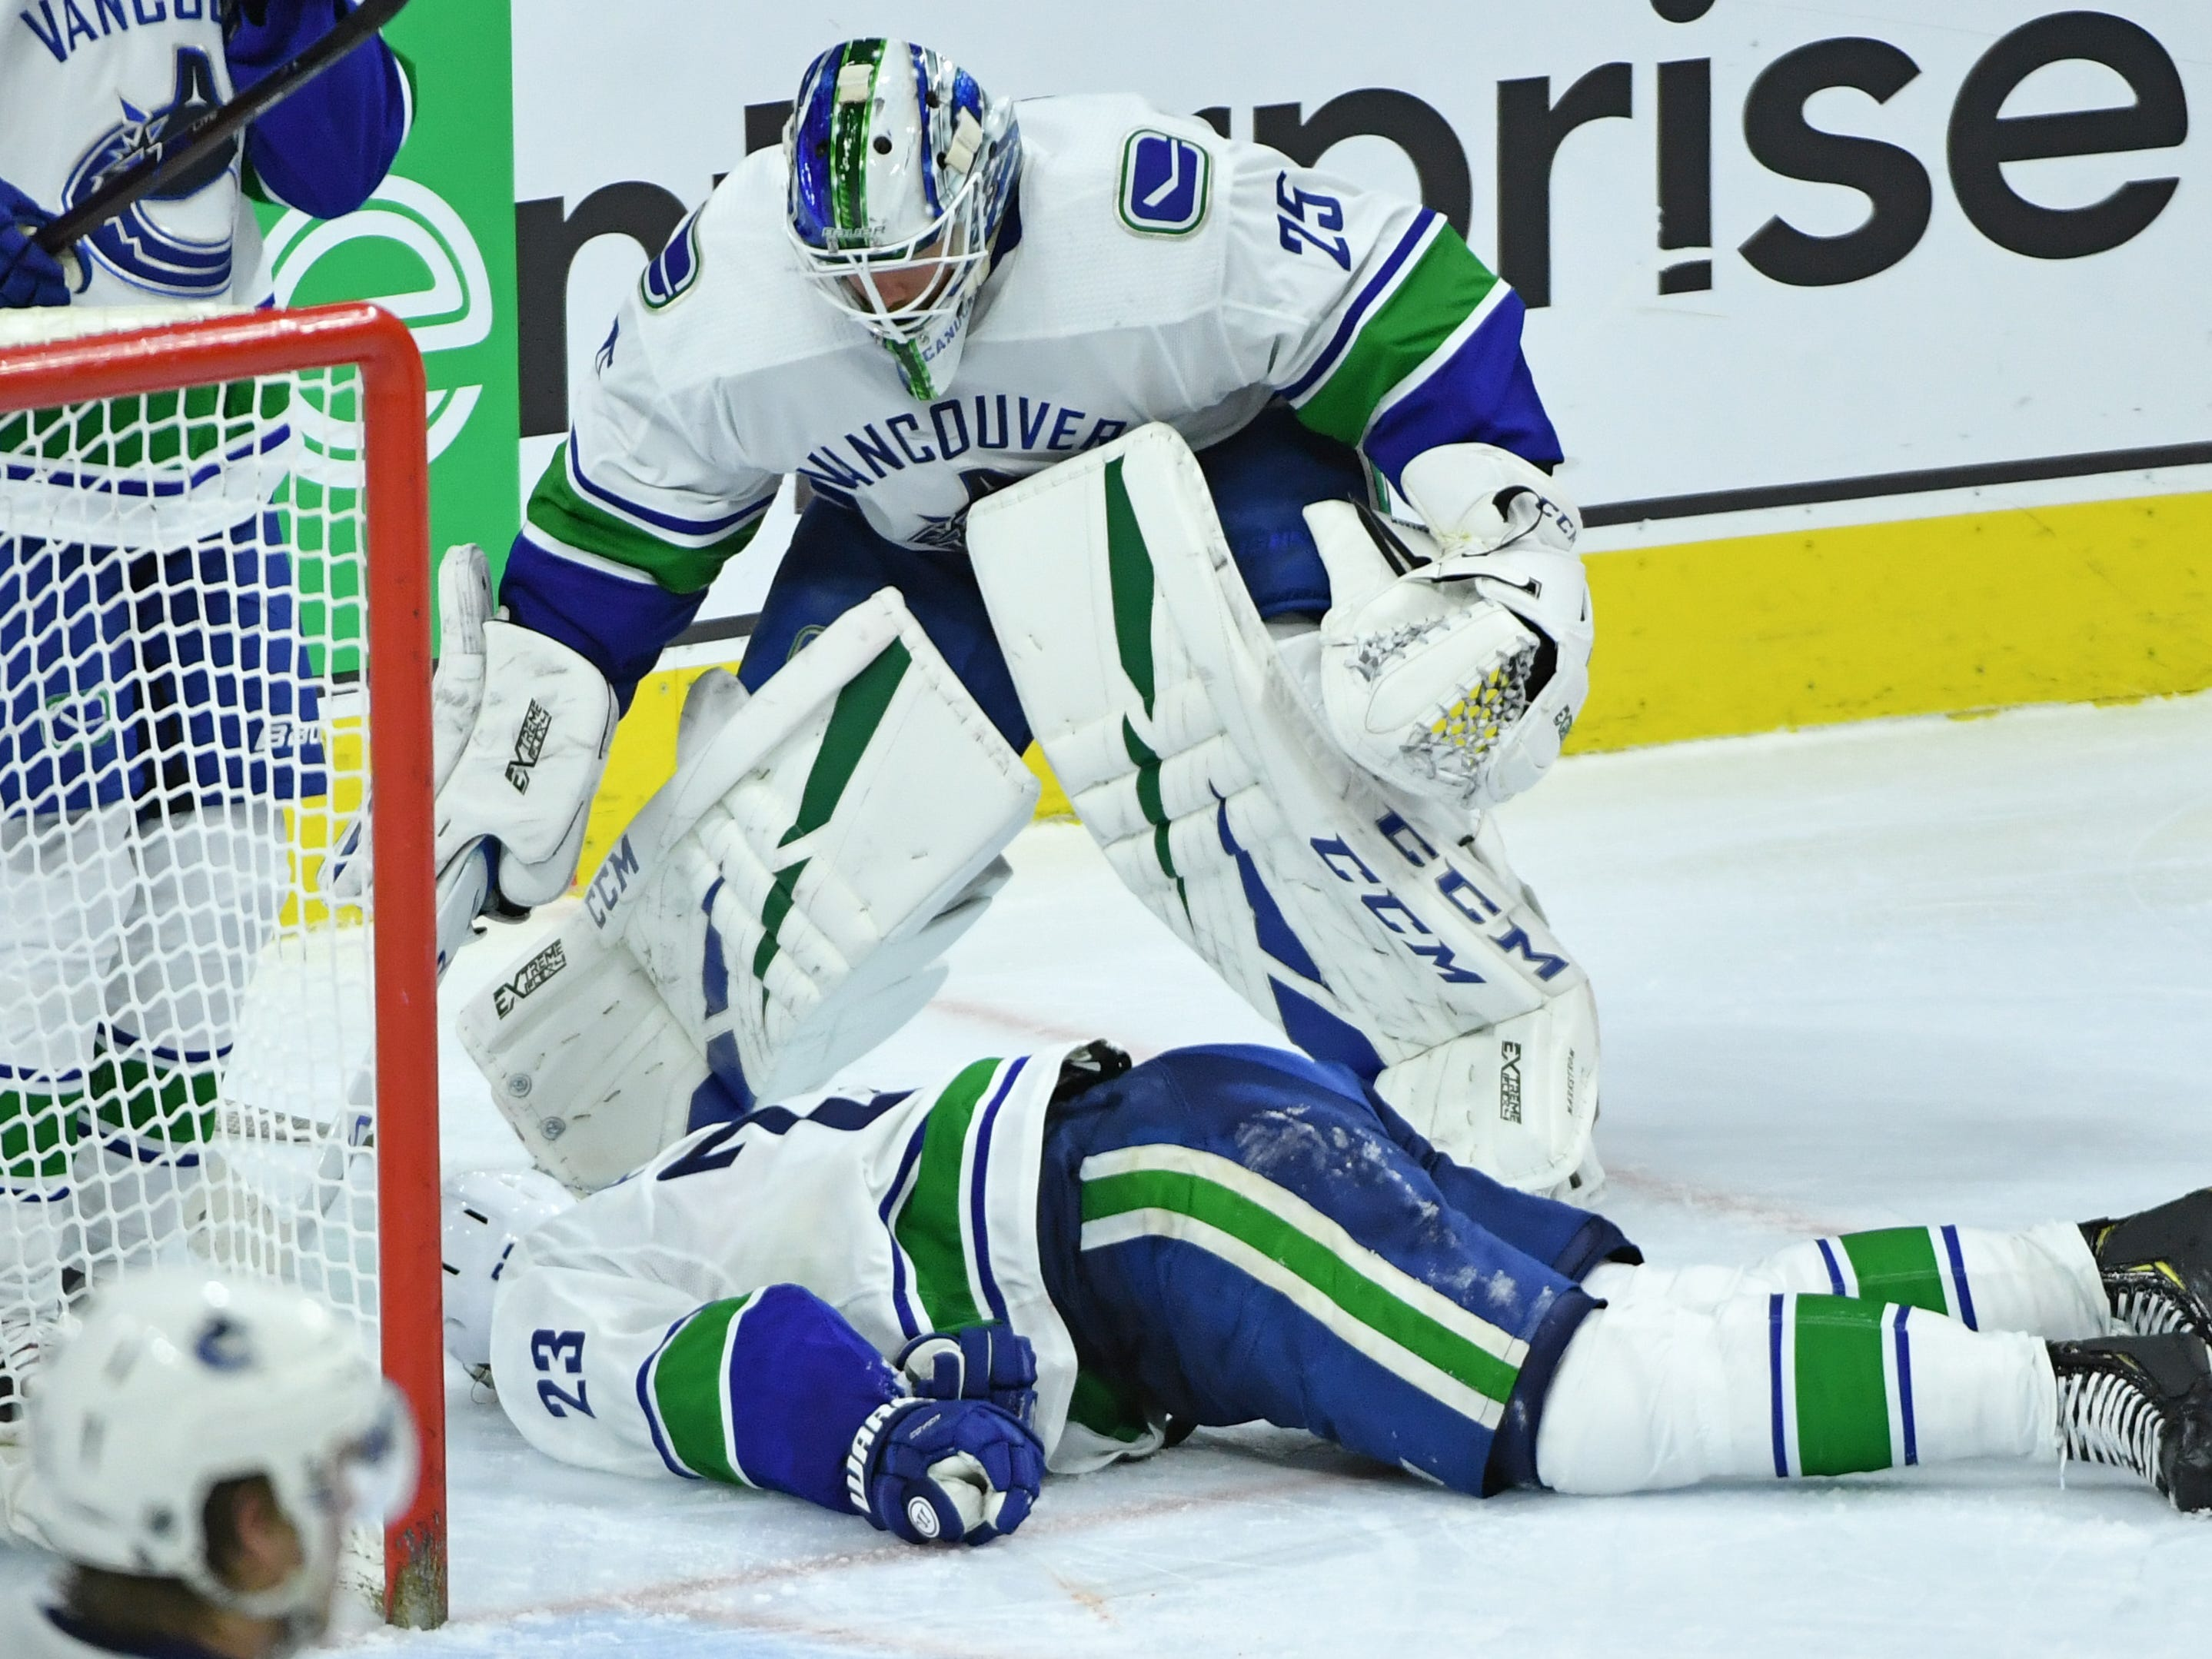 Feb. 4: Vancouver Canucks goaltender Jacob Markstrom tries to help defenseman Alex Edler after he was injured against the Philadelphia Flyers during the third period at Wells Fargo Center.